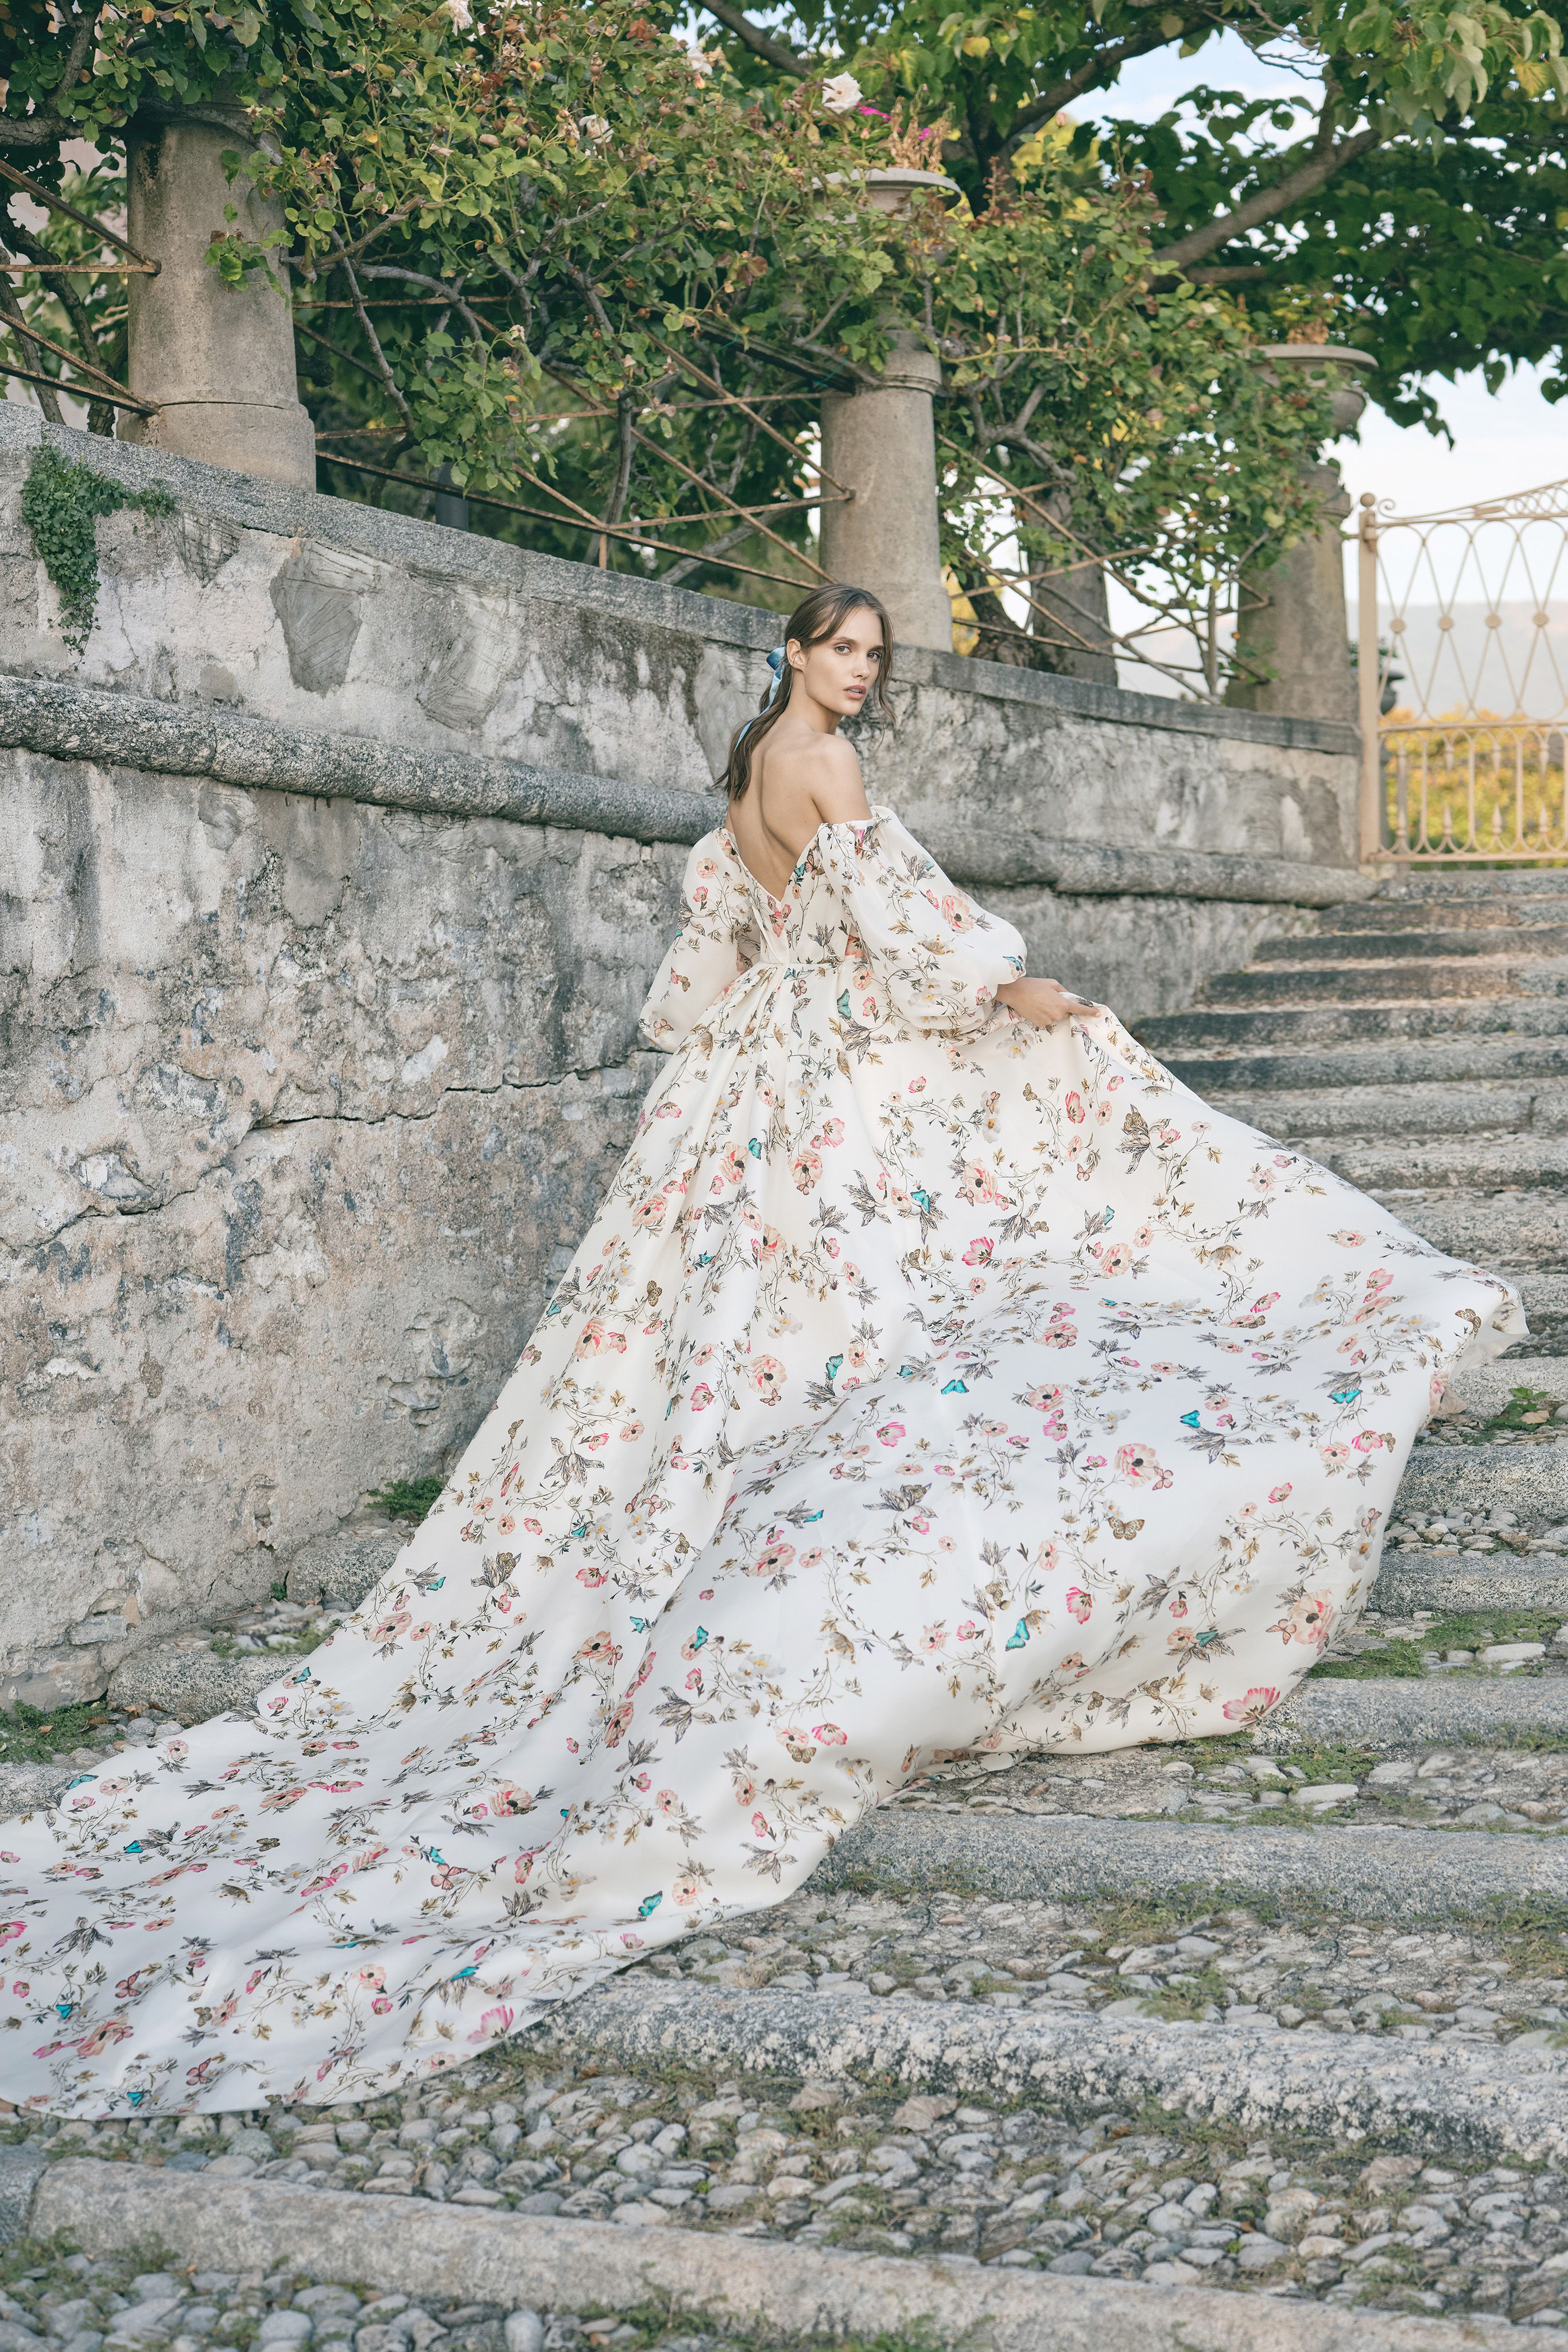 Floral Wedding Dress Image By Monique Lhuillier On Fall 2020